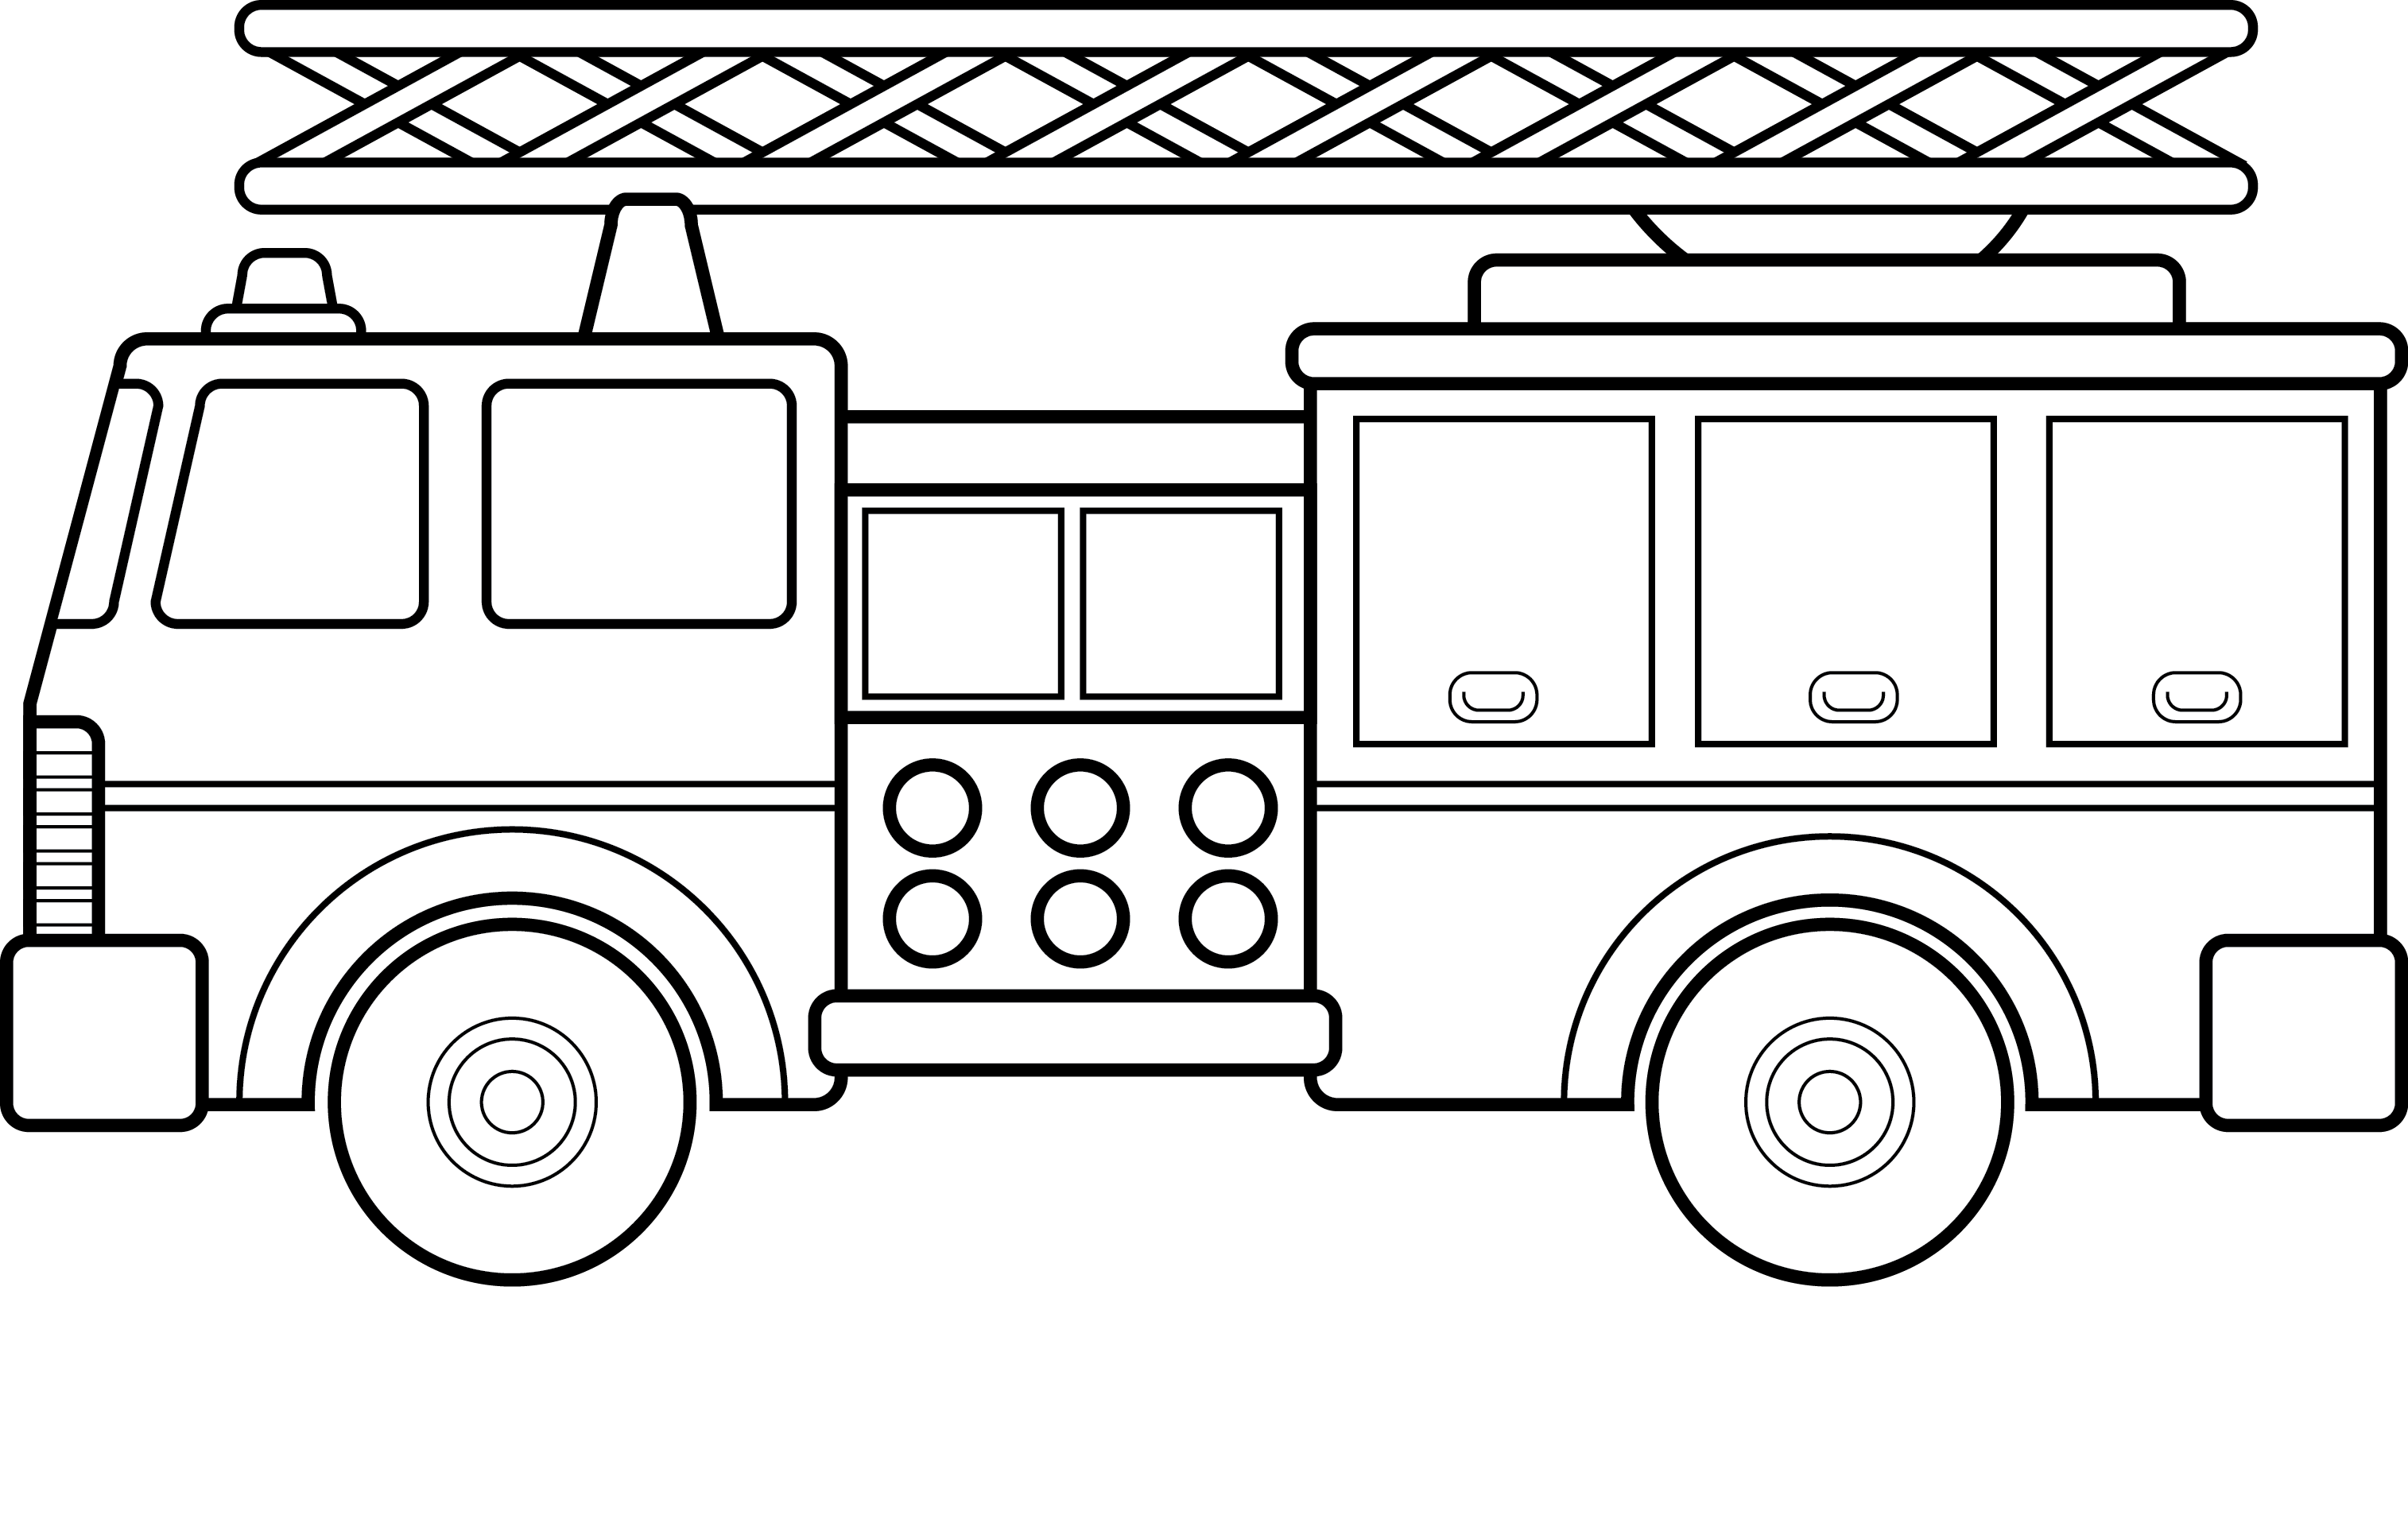 photo relating to Free Fire Truck Coloring Pages Printable identify Free of charge Printable Fireplace Truck Coloring Internet pages For Small children